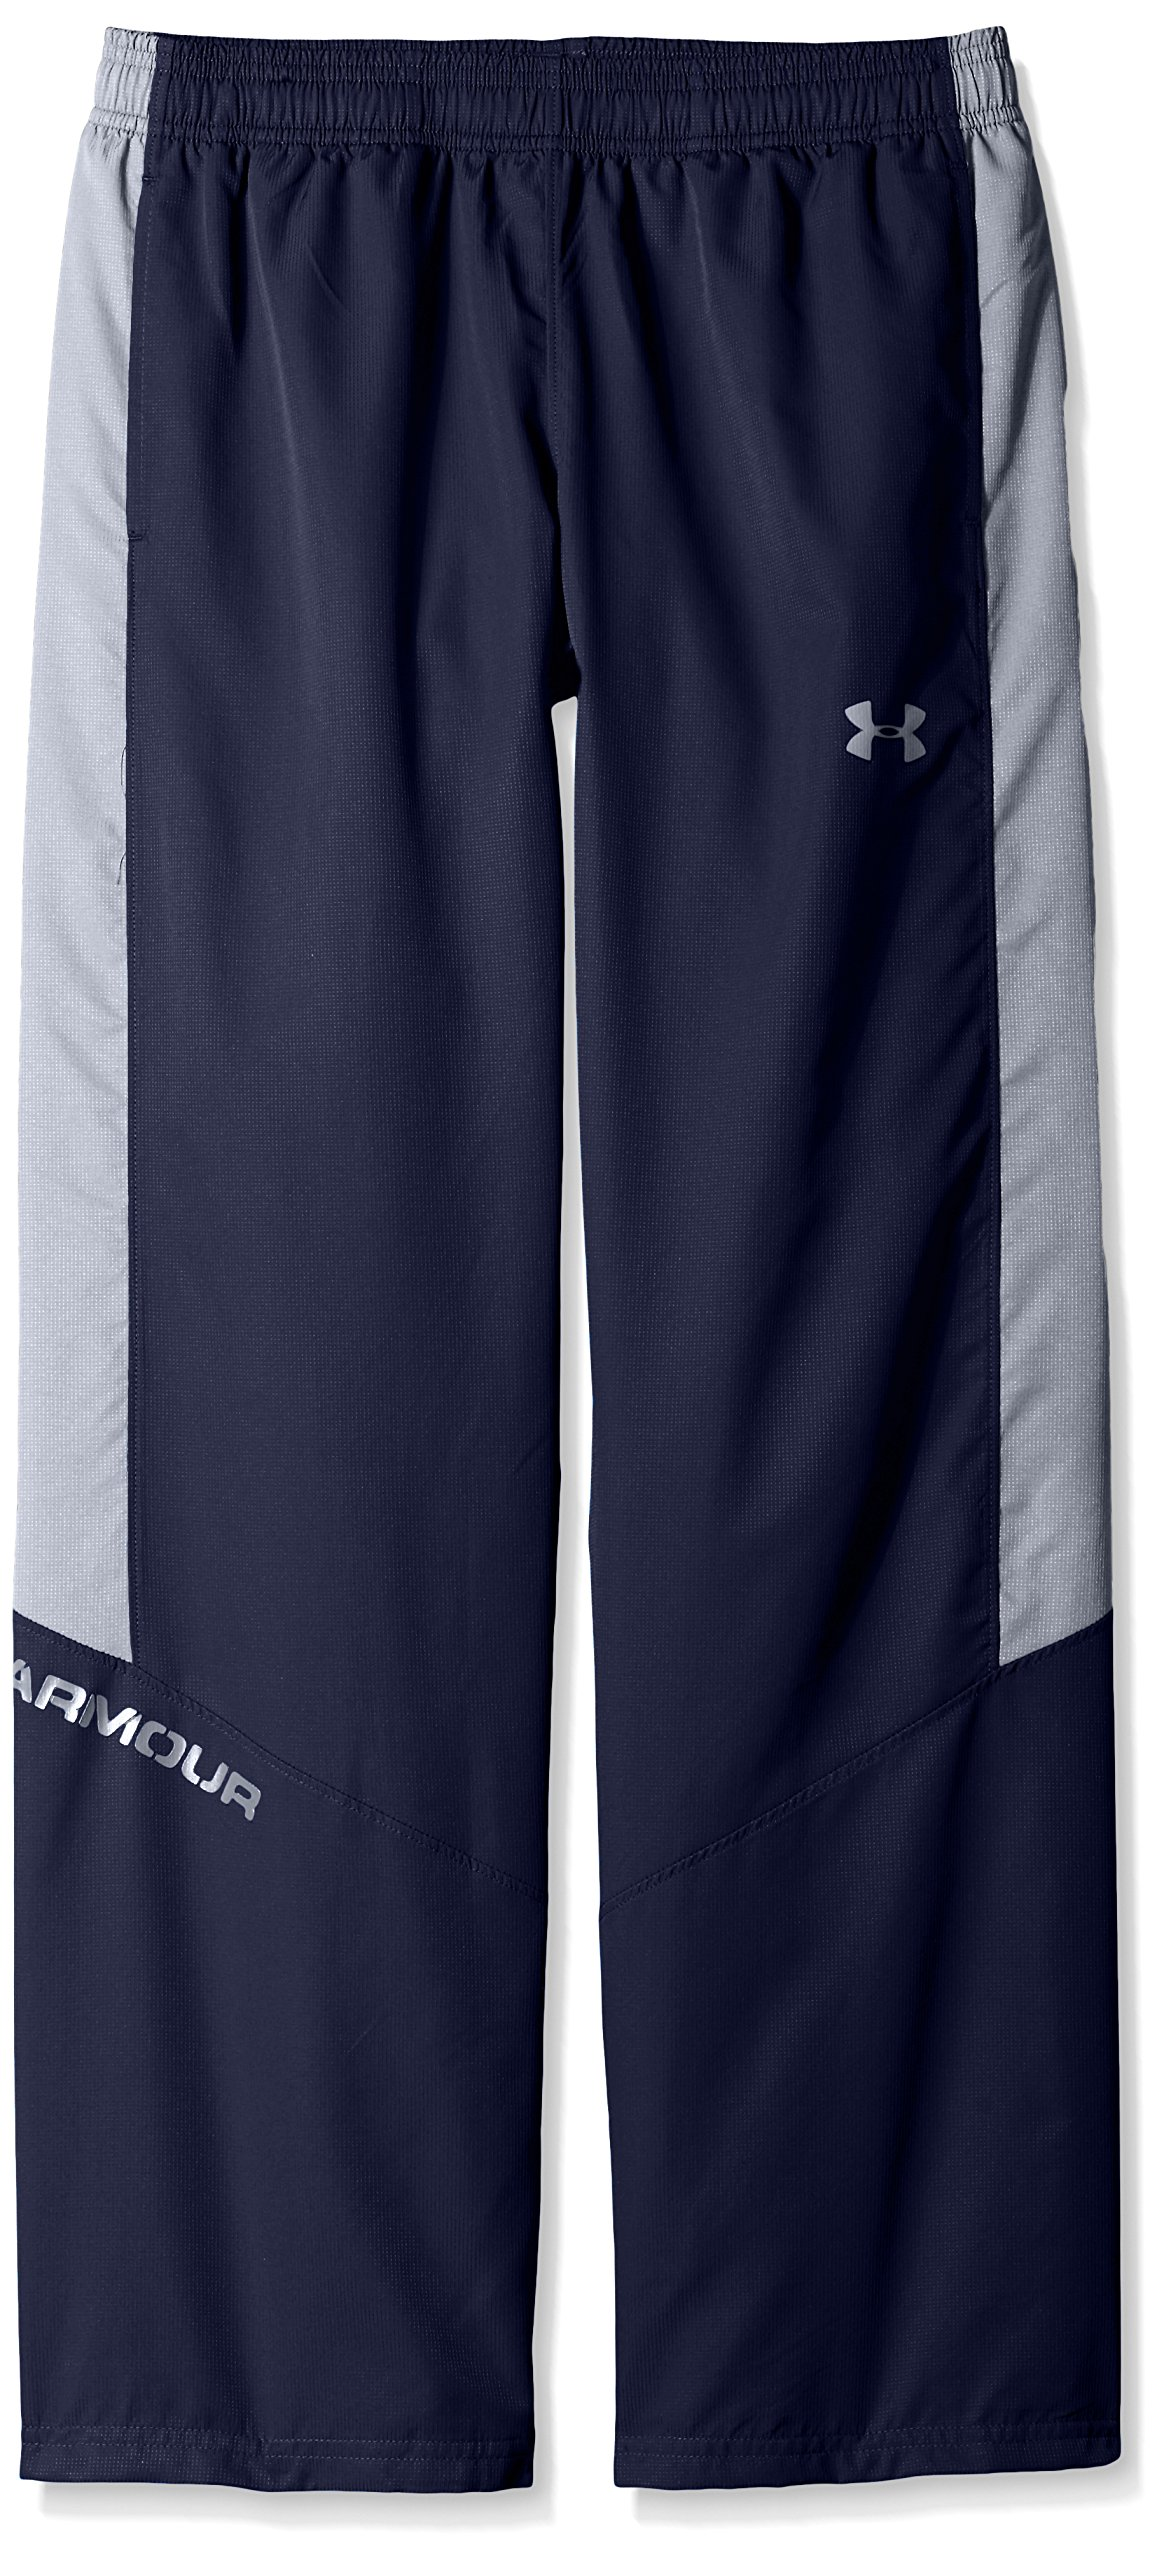 Under Armour Boys' Main Enforcer Woven Pants,Midnight Navy /Steel, Youth Small by Under Armour